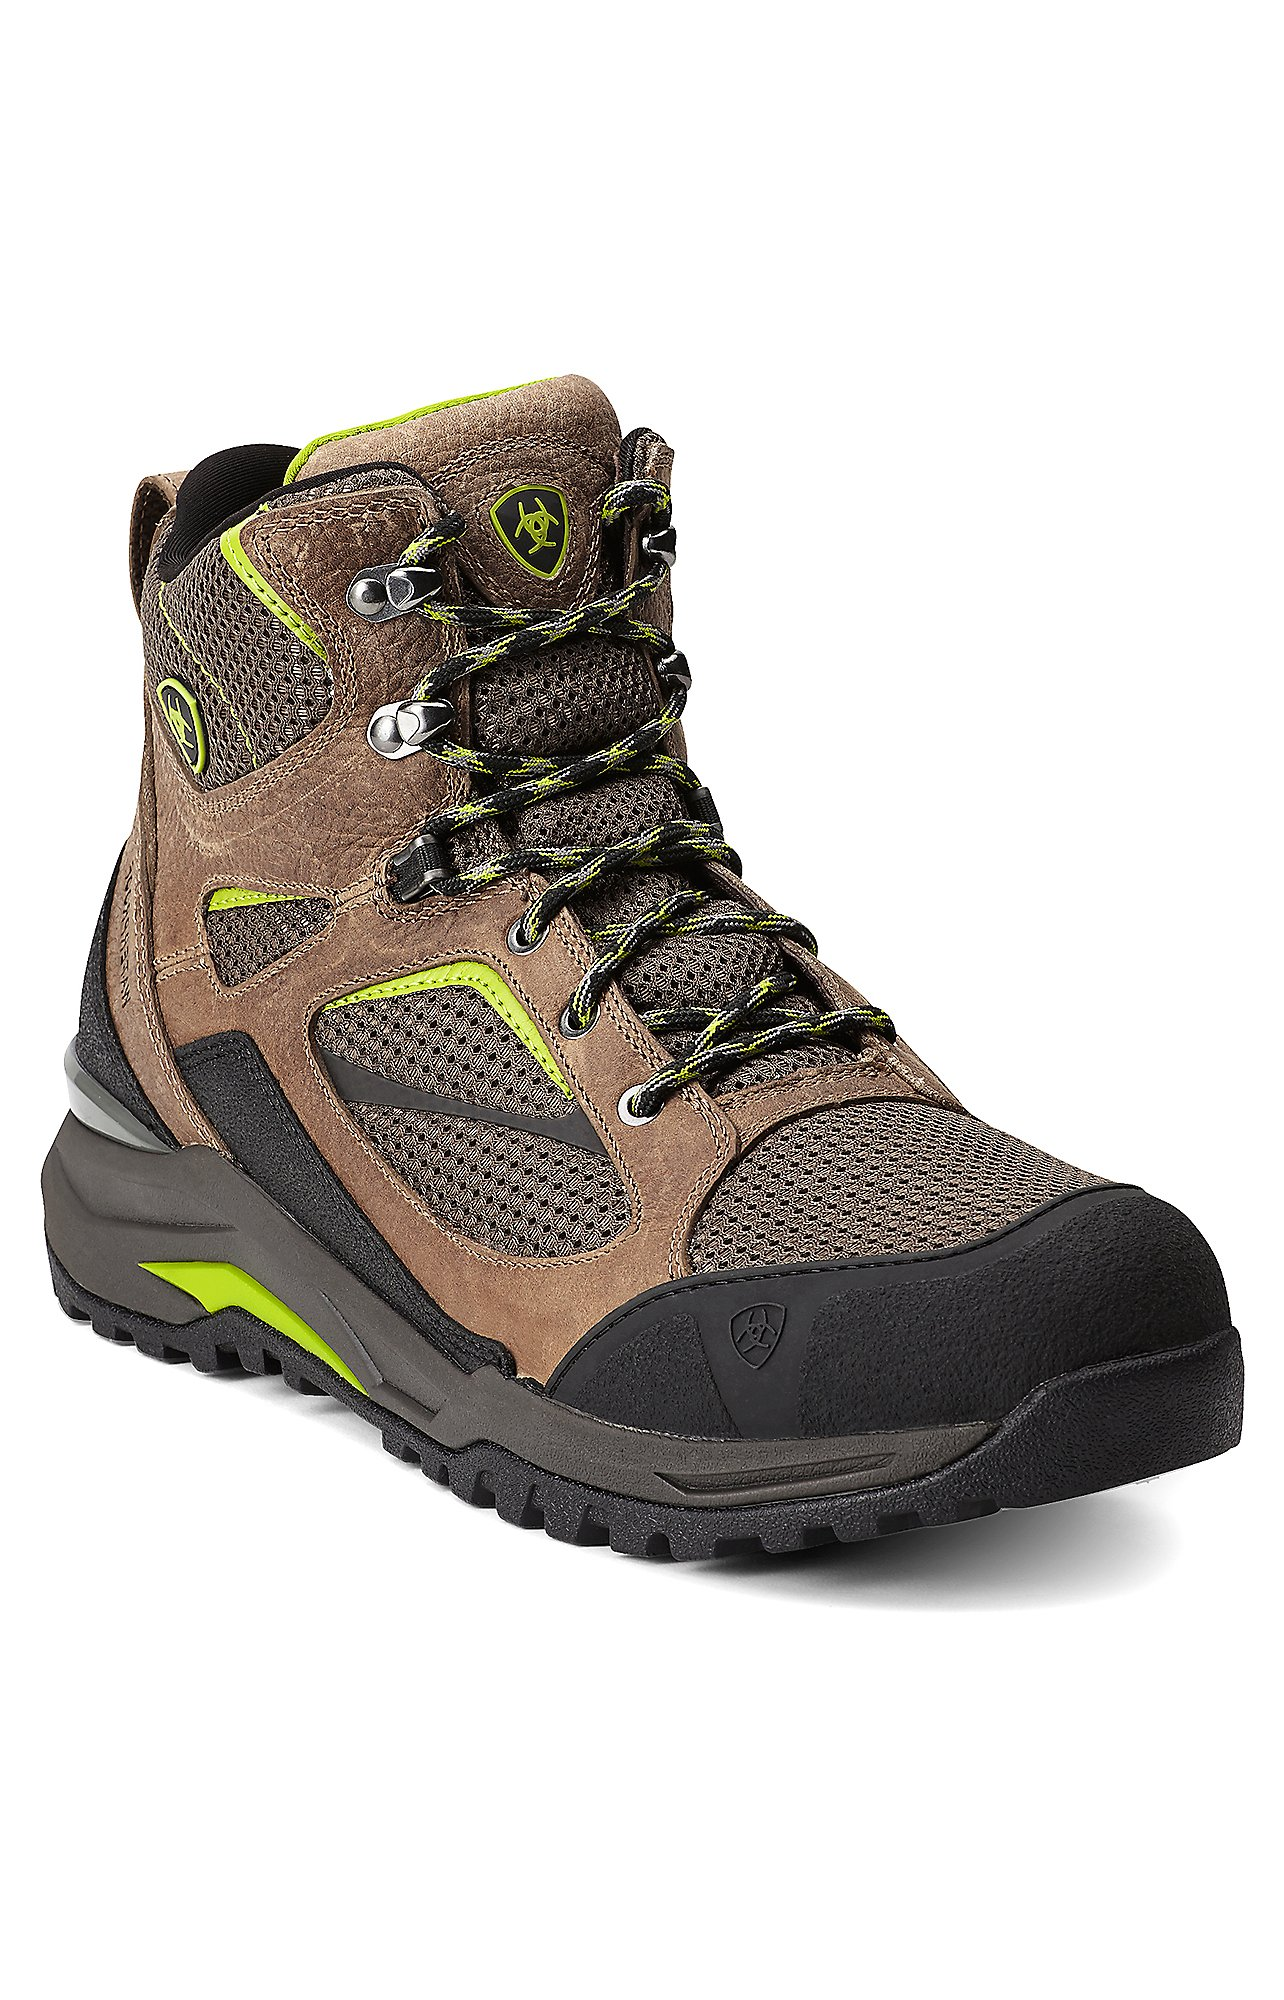 Ariat Transverse Men's Grey Mid H20 Waterproof Hiking Boots ...